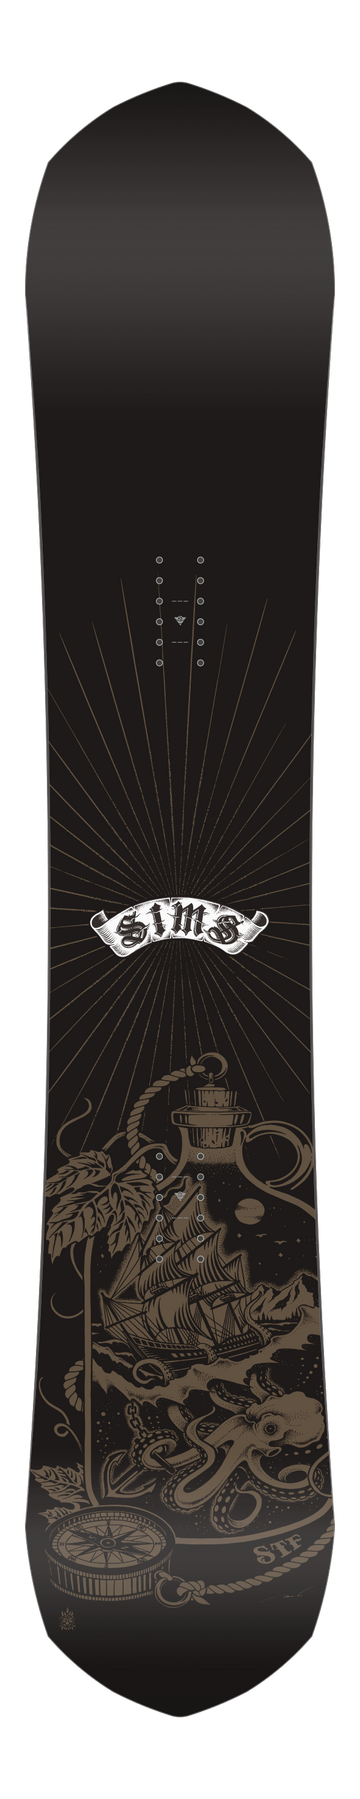 2021 Sims STF Snowboard